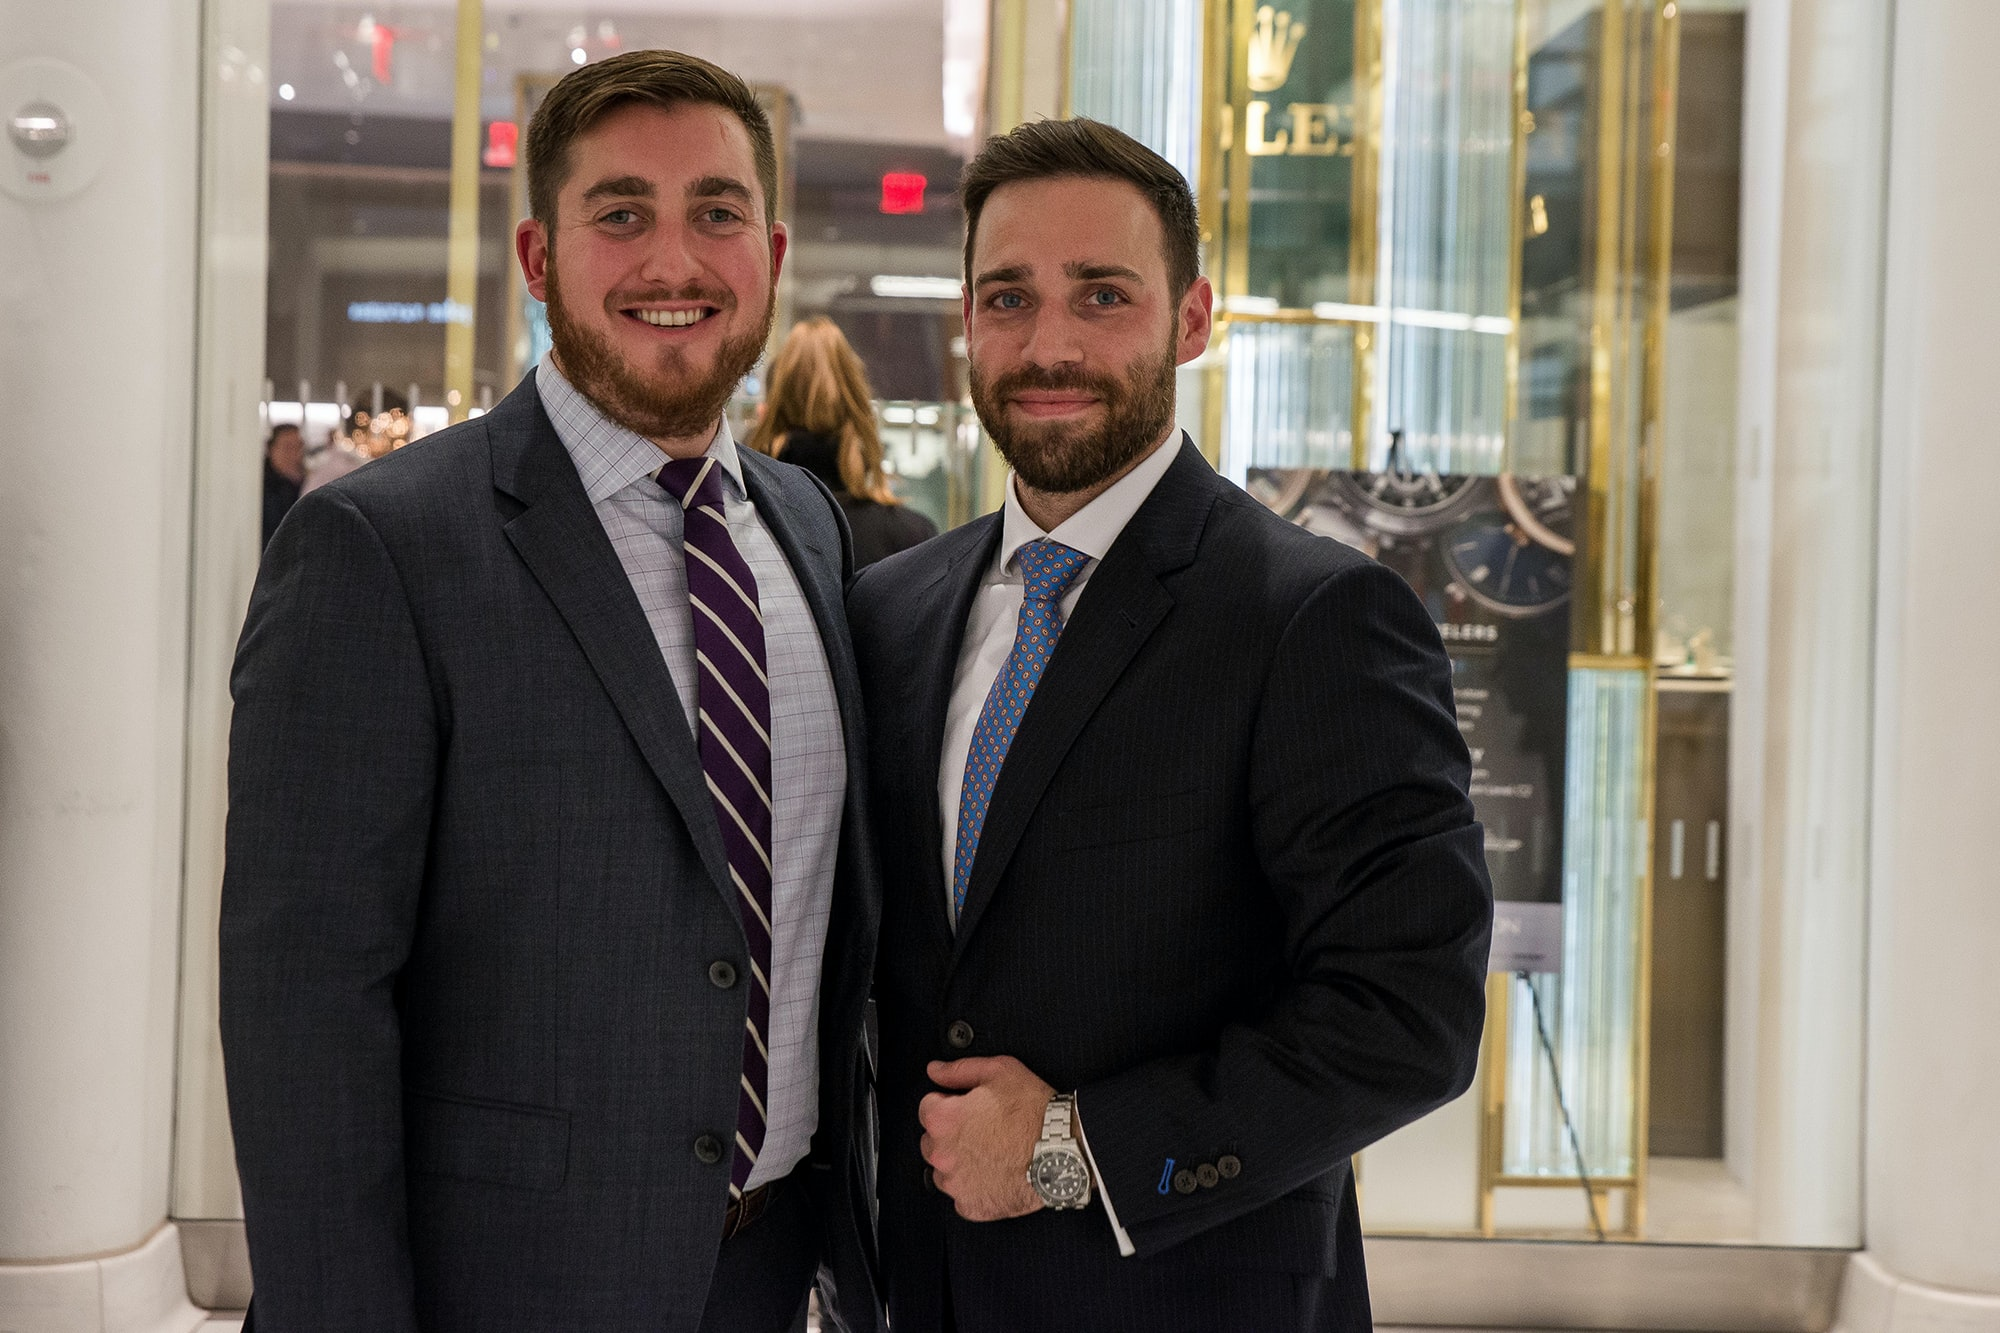 Photo Report: HODINKEE Celebrates London Jewelers' New Store In New York City's Oculus Photo Report: HODINKEE Celebrates London Jewelers' New Store In New York City's Oculus 20161109 LondonJewelersxHodinkee 150